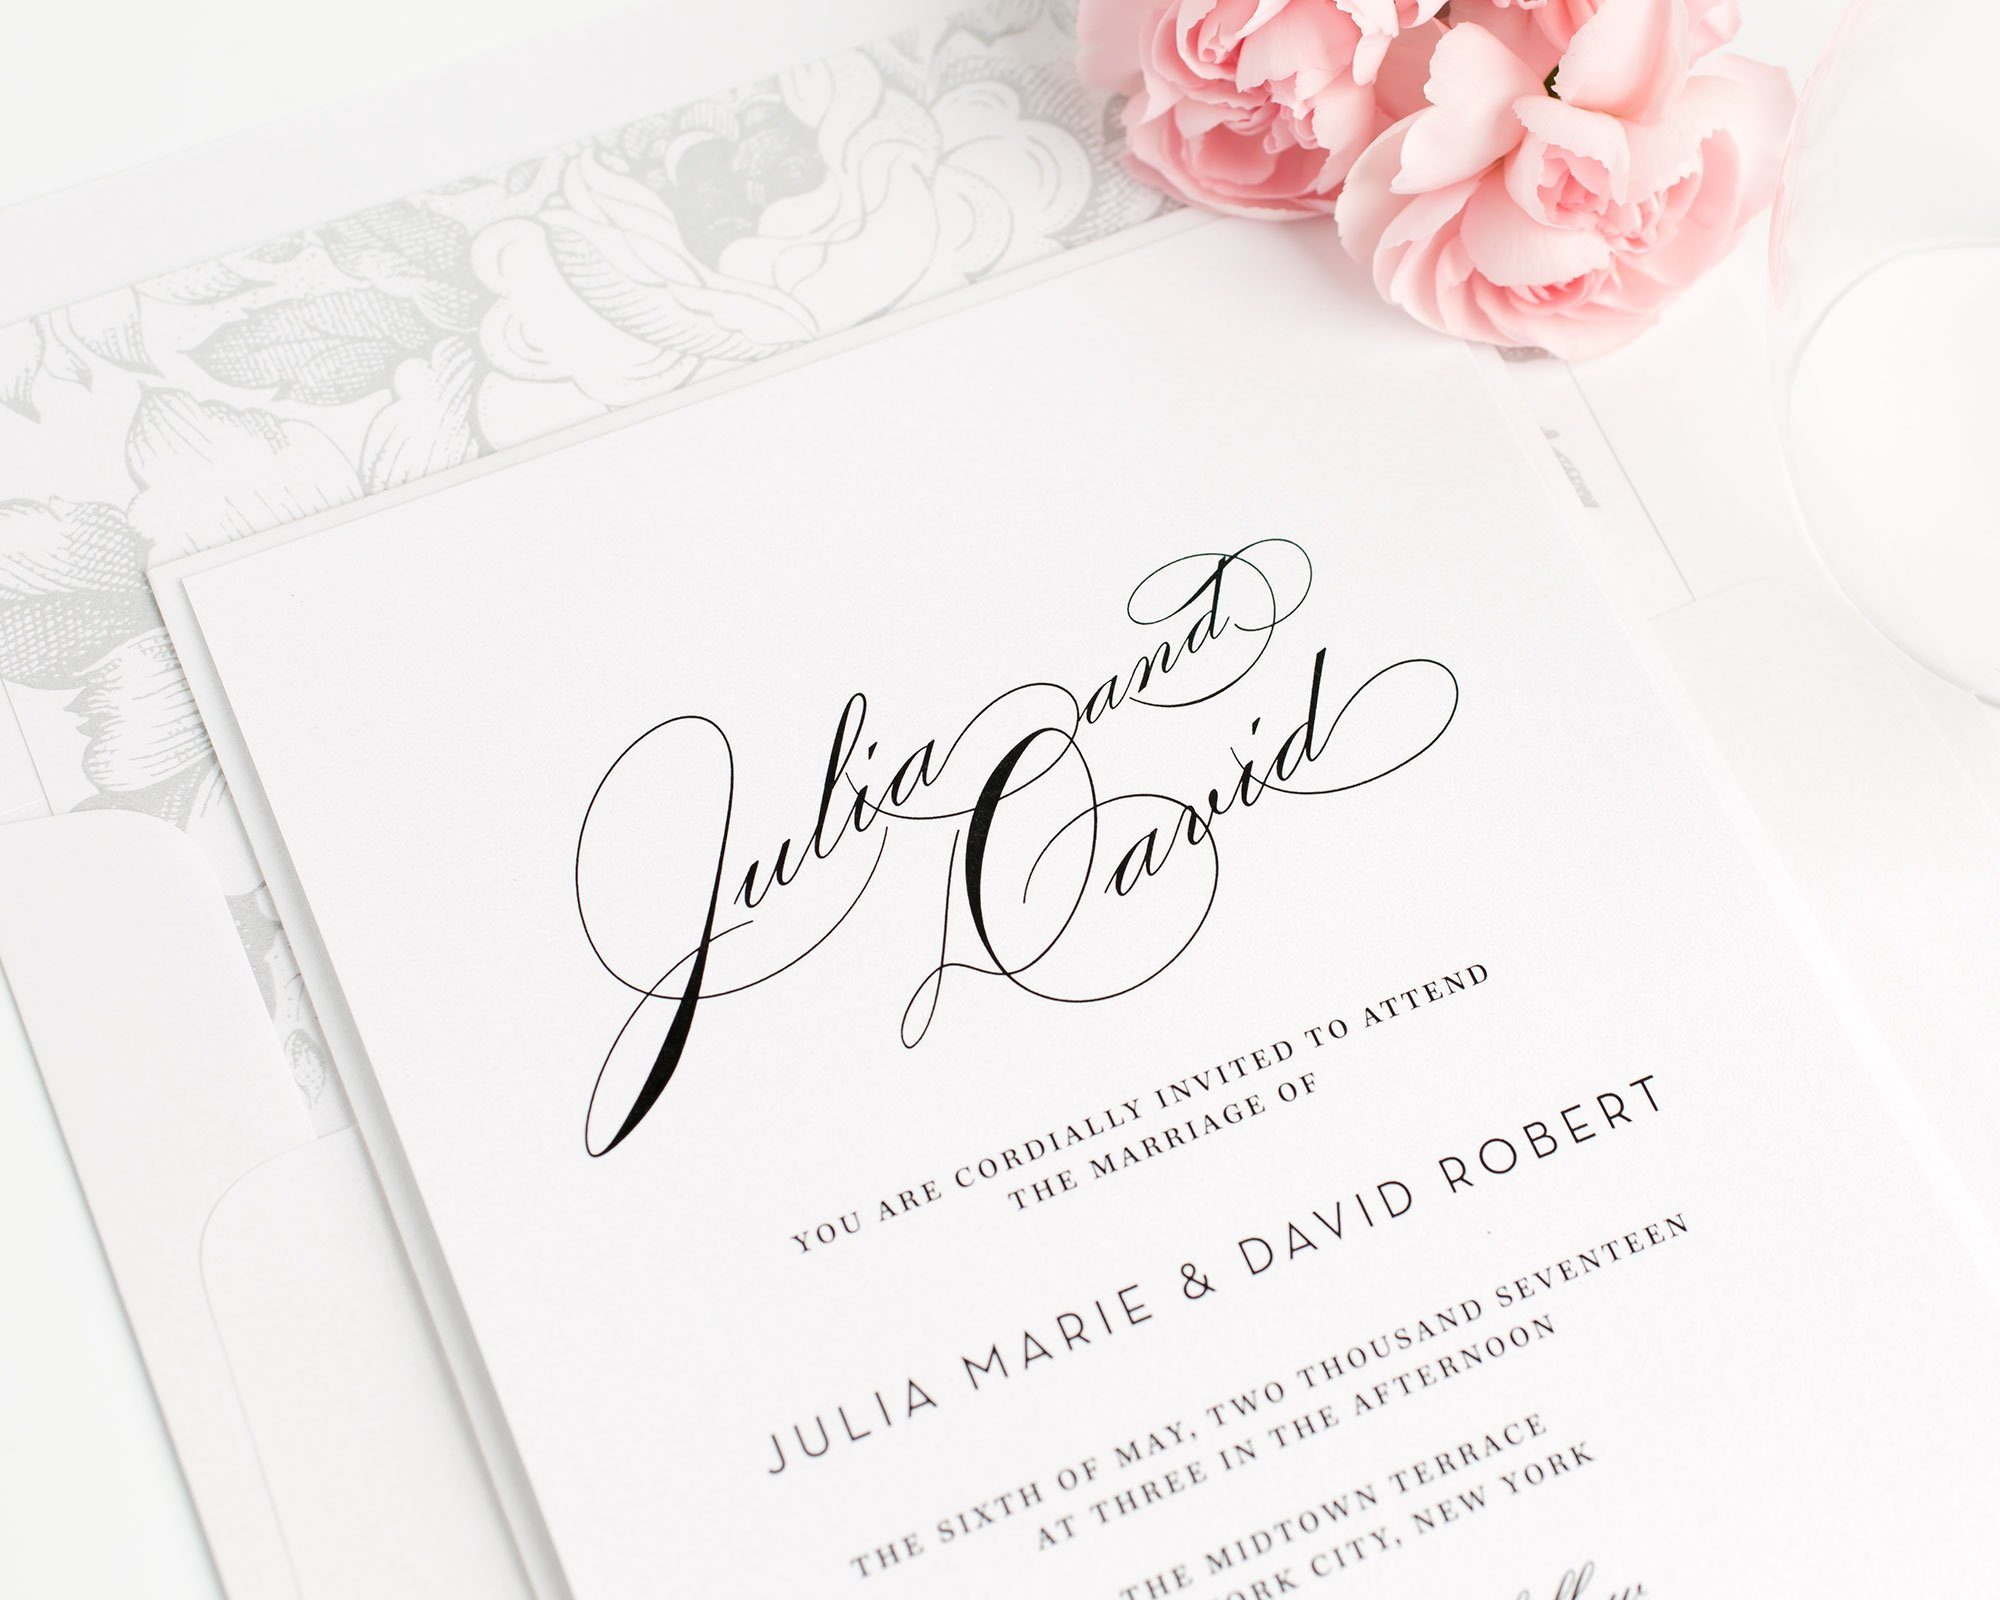 Search results for large names page 4 wedding invitations vintage floral wedding invitations in gray monicamarmolfo Image collections